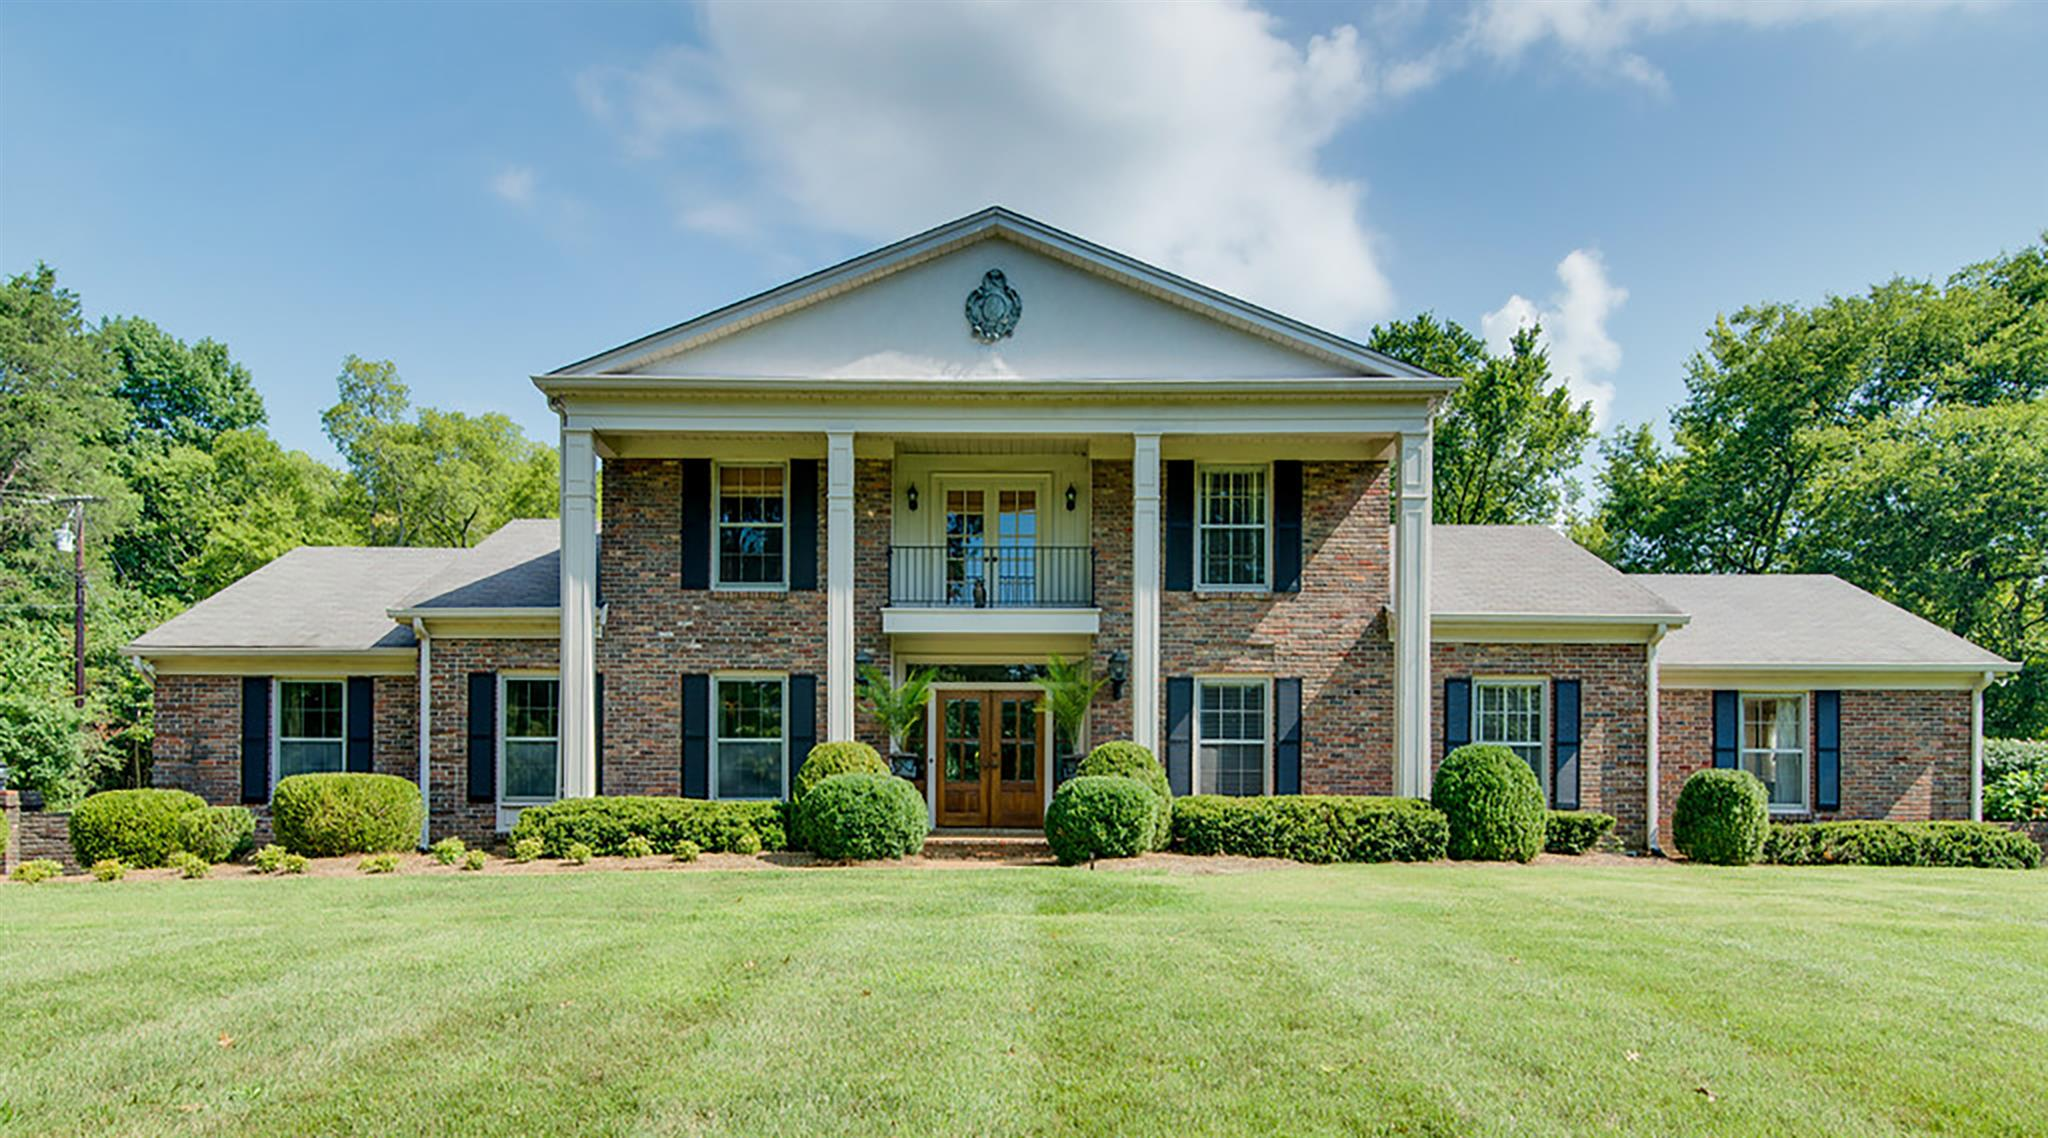 1300 Old Hickory Blvd, Brentwood, TN 37027